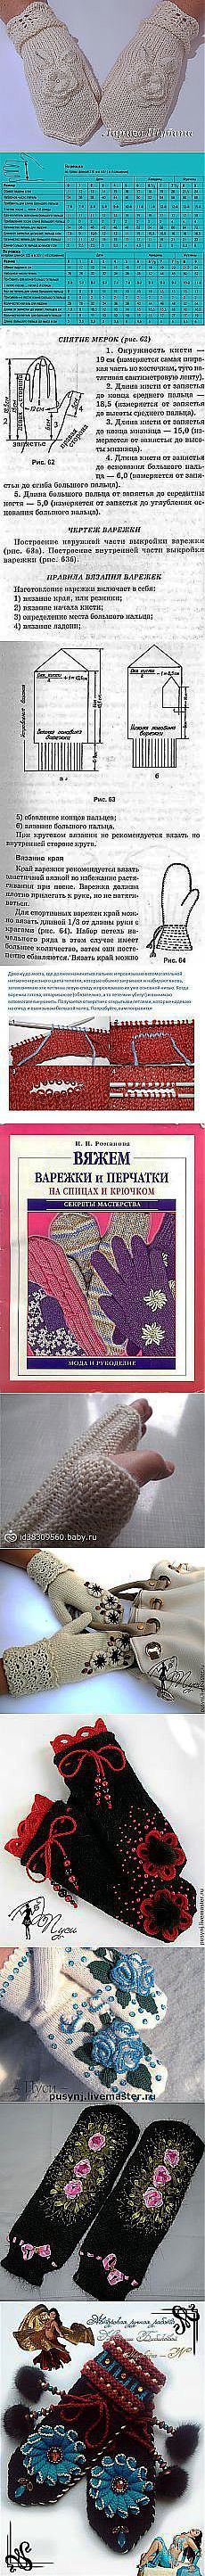 How to Knit Gloves that Fit Perfectly ___ How to Measure Your Hand to Make Gloves and Mittens that Fit Exactly ___________________________ Маргарита Боркина: Вязание - варежки, перчатки, митенки | Постила